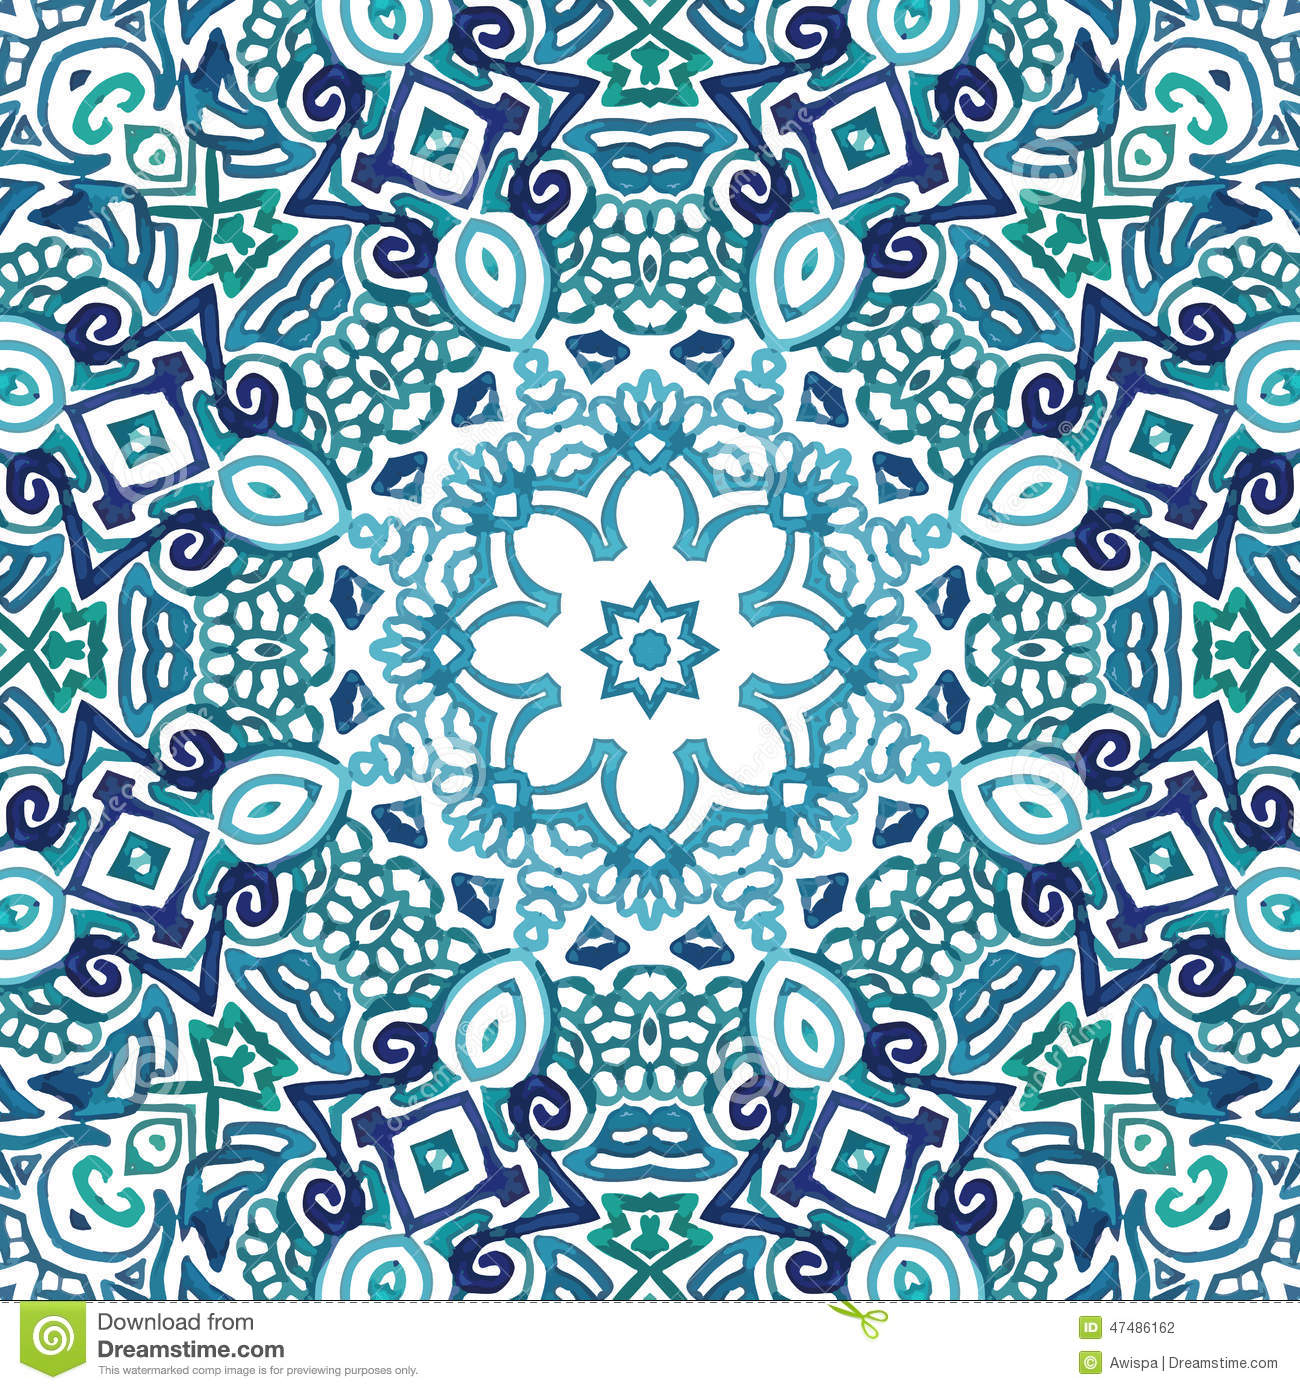 Seamless watercolor doodle decorative pattern